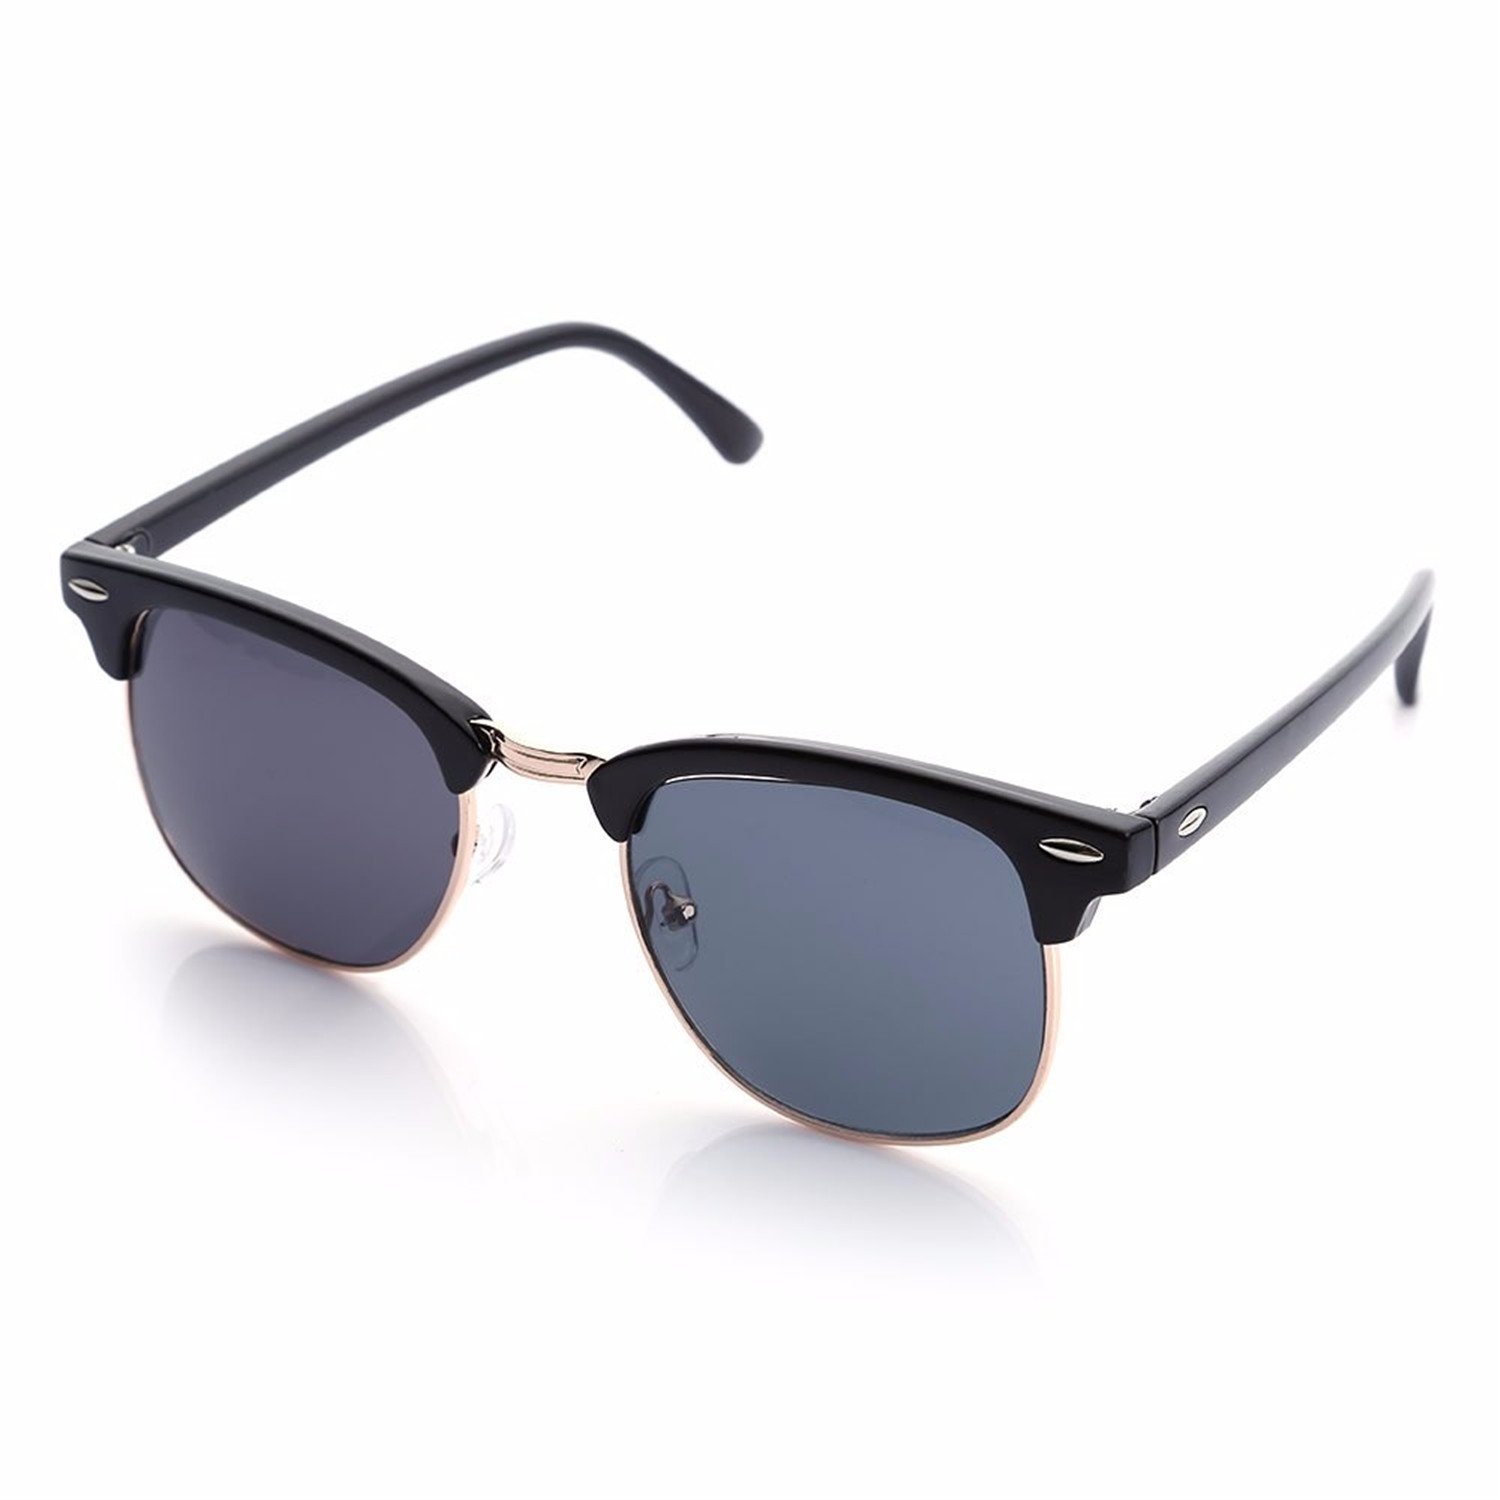 Amazon.com: Half Metal Sunglasses Men Women NEW Brand ...